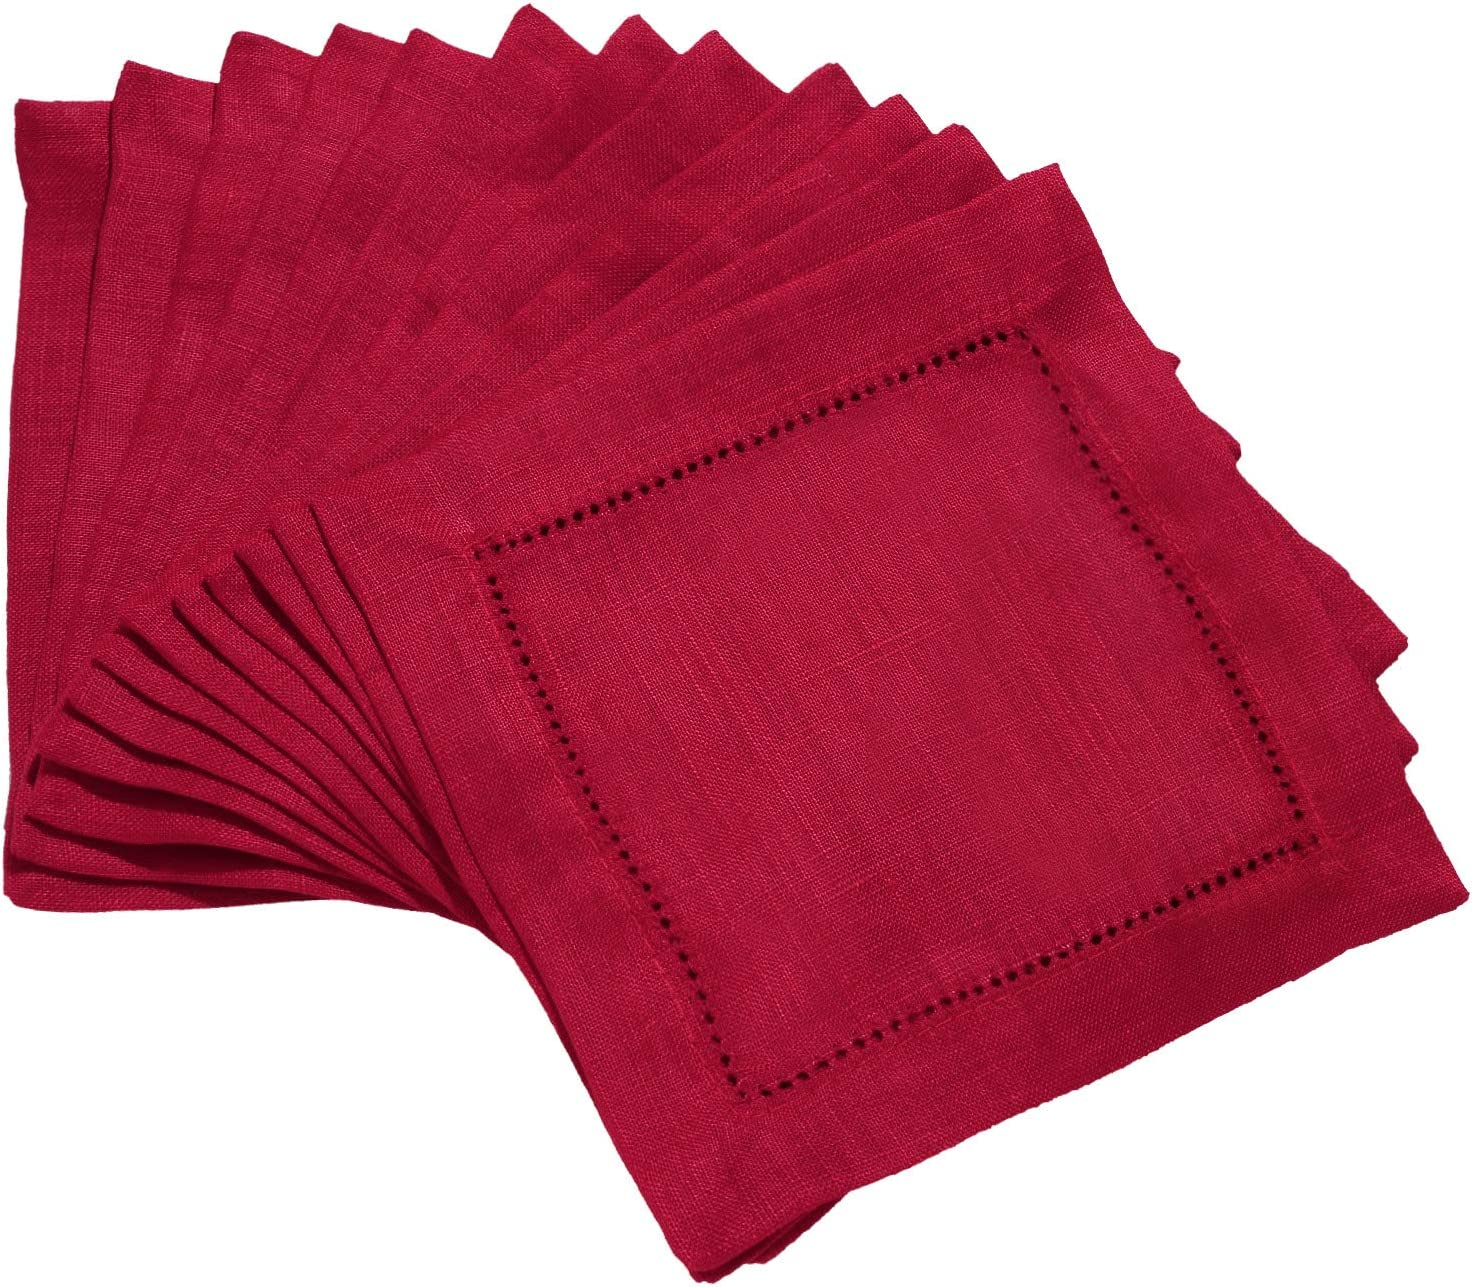 MingHing Craft 12 Packs Cocktail Napkins Inch Quantity limited 6 Soft X Gifts Washabl